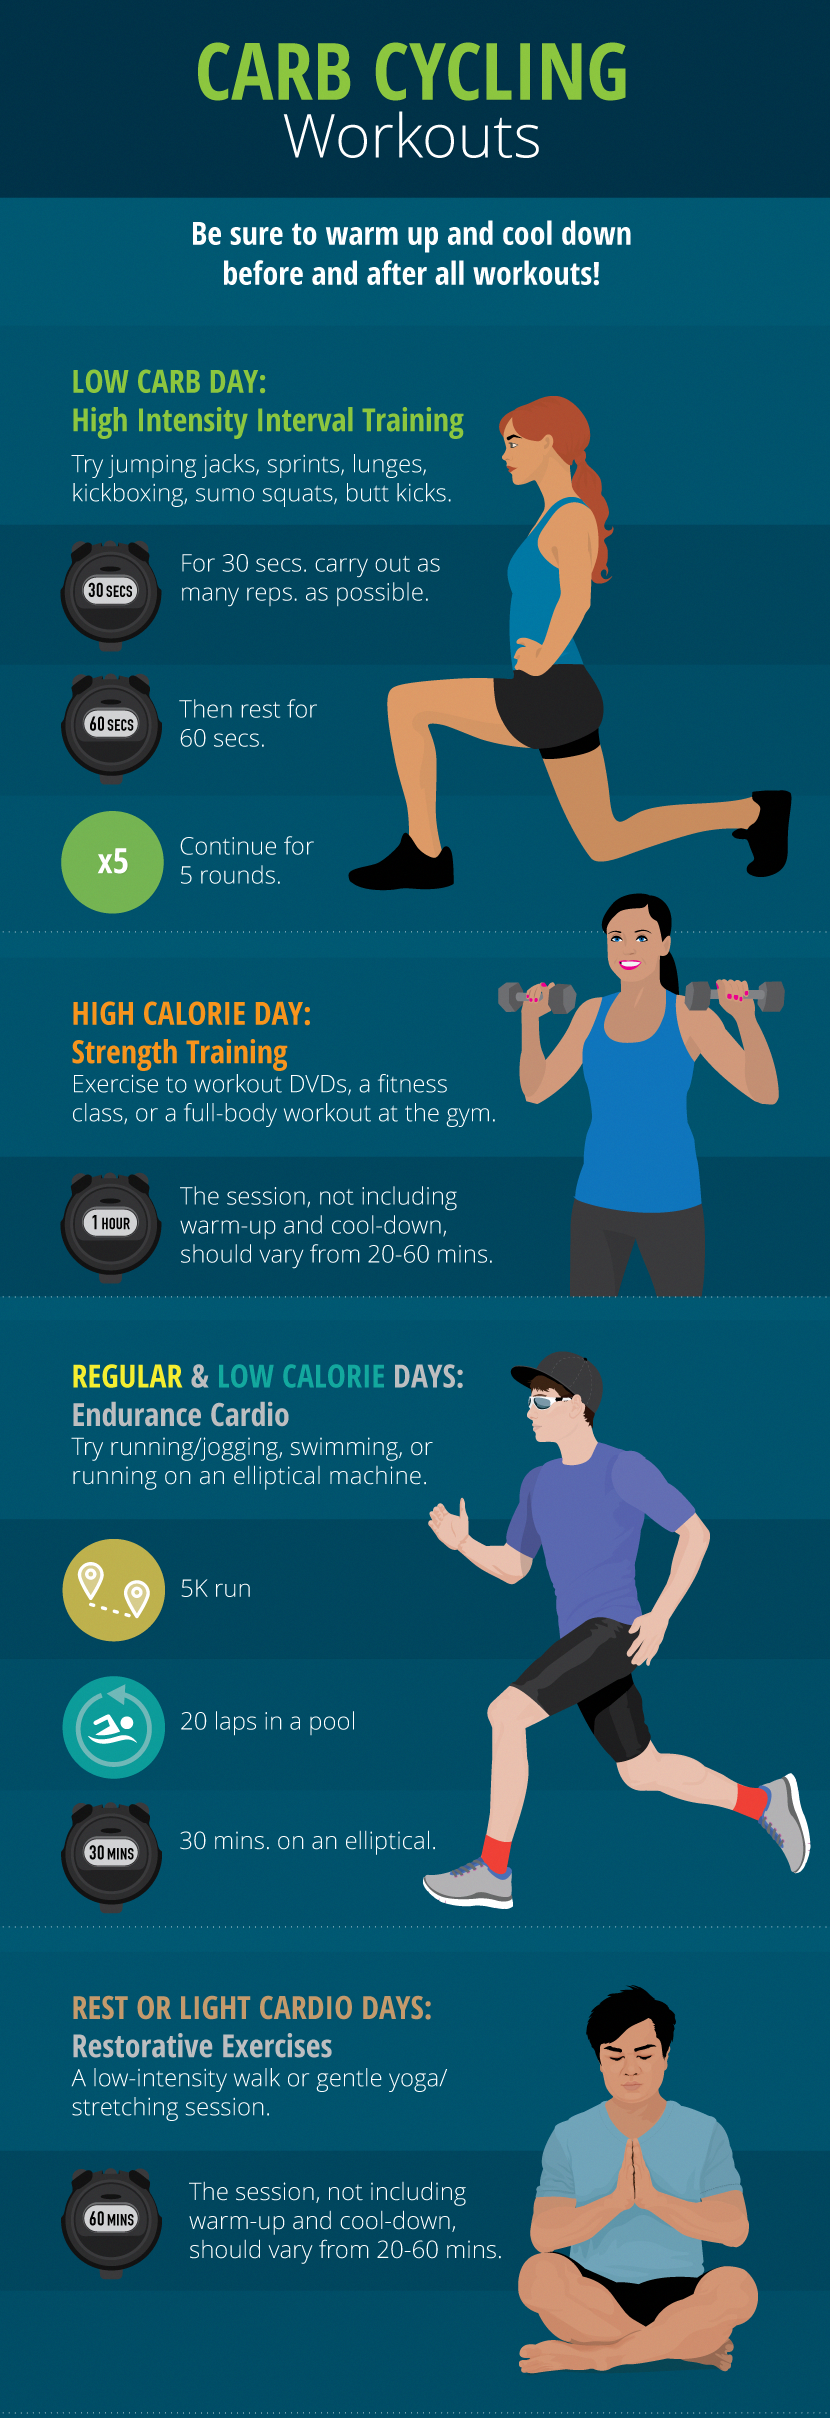 #weightlosscarb #workouts #improved #cycling #cycling #fitness #weight #carb #carb #loss #for #andCa...